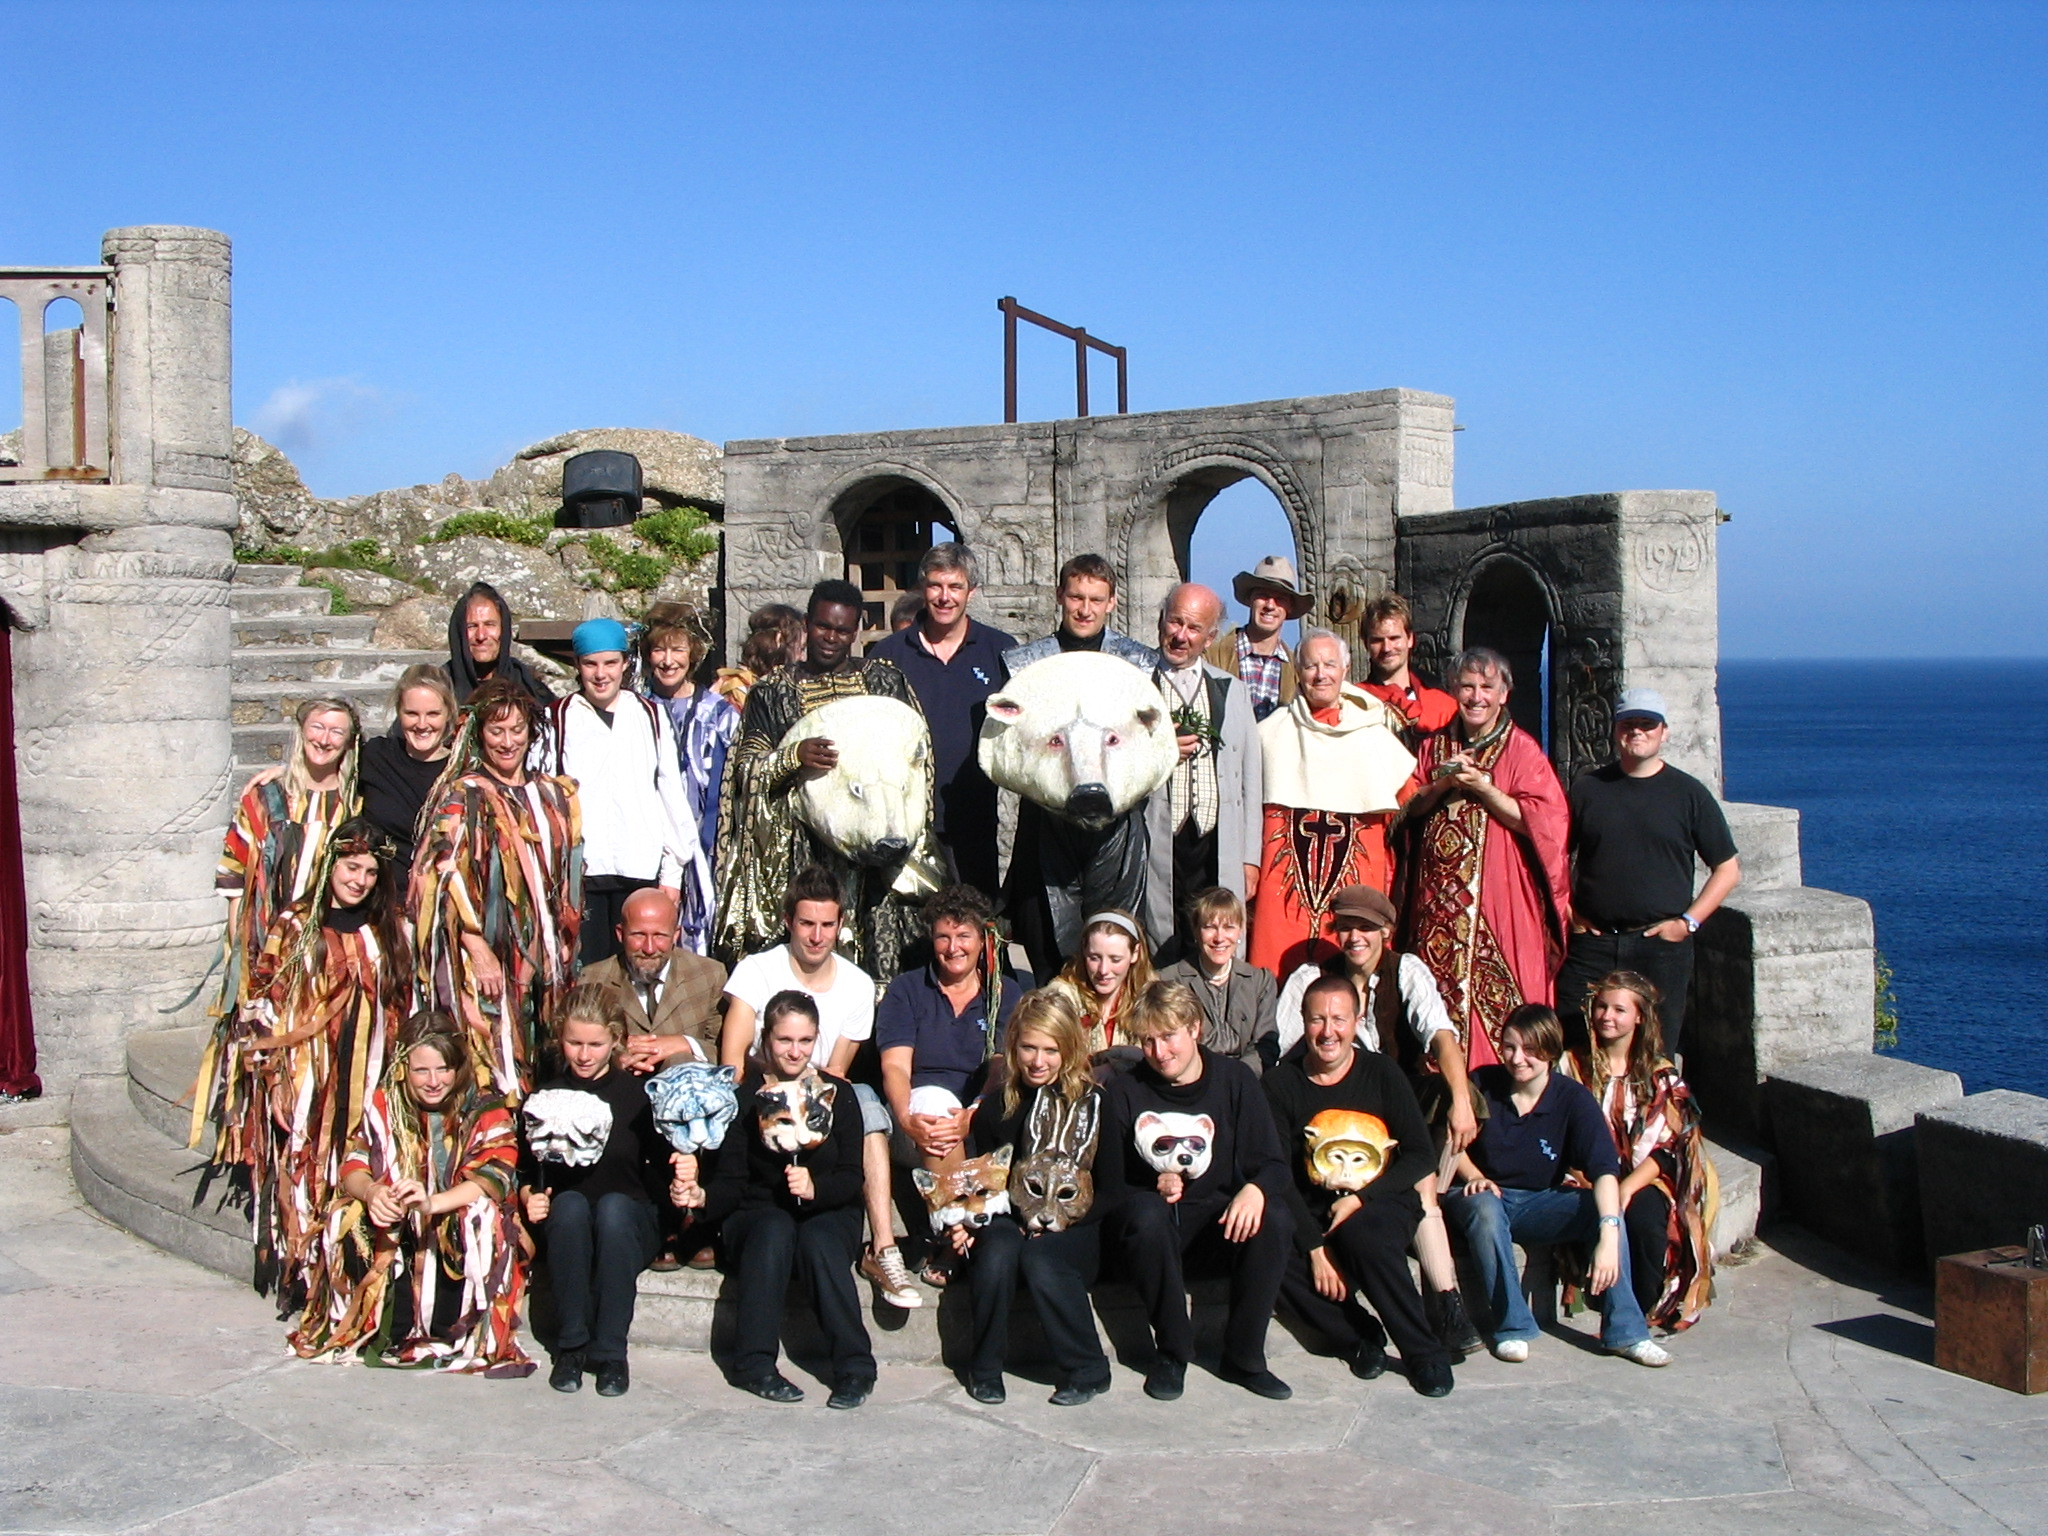 The cast and crew of His Dark Materials (2007)